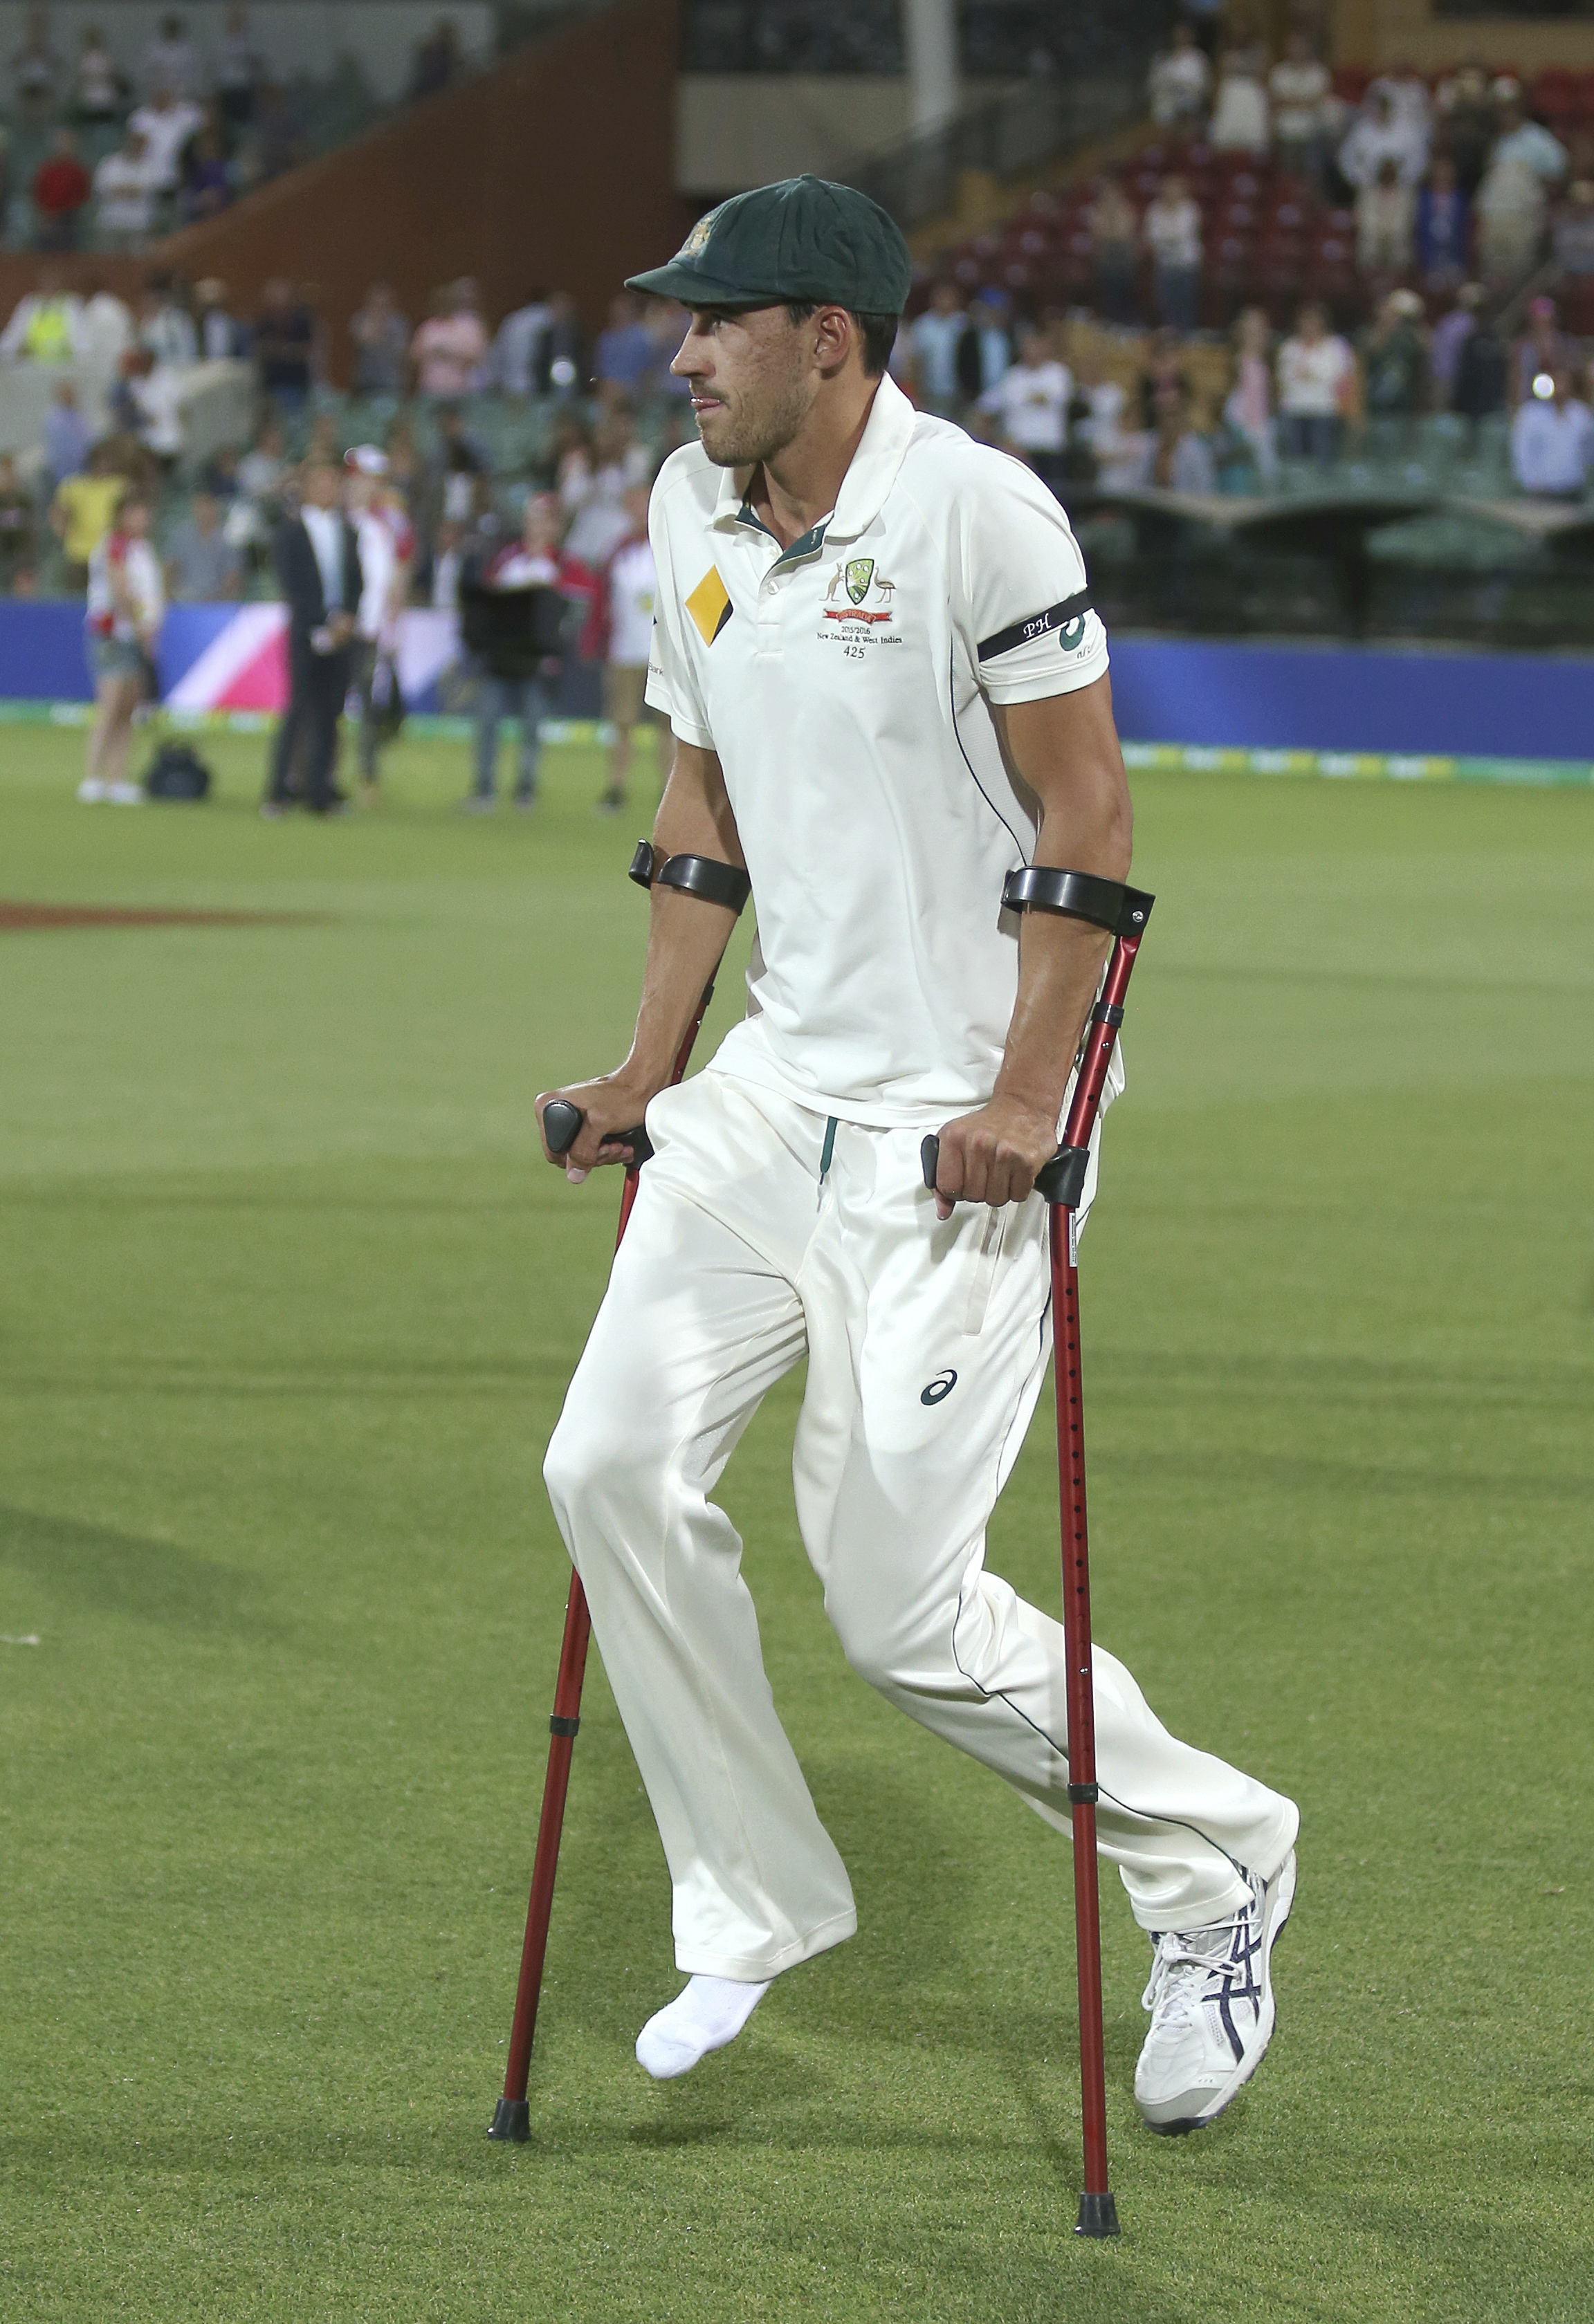 Australia's Mitchell Starc uses crutches following their cricket test against New Zealand in Adelaide, Sunday, Nov. 29, 2015. Australia won the match, the first day-night test, by 3 wickets inside of 3 days and won the series 2-0. (AP Photo/Rick Rycroft)